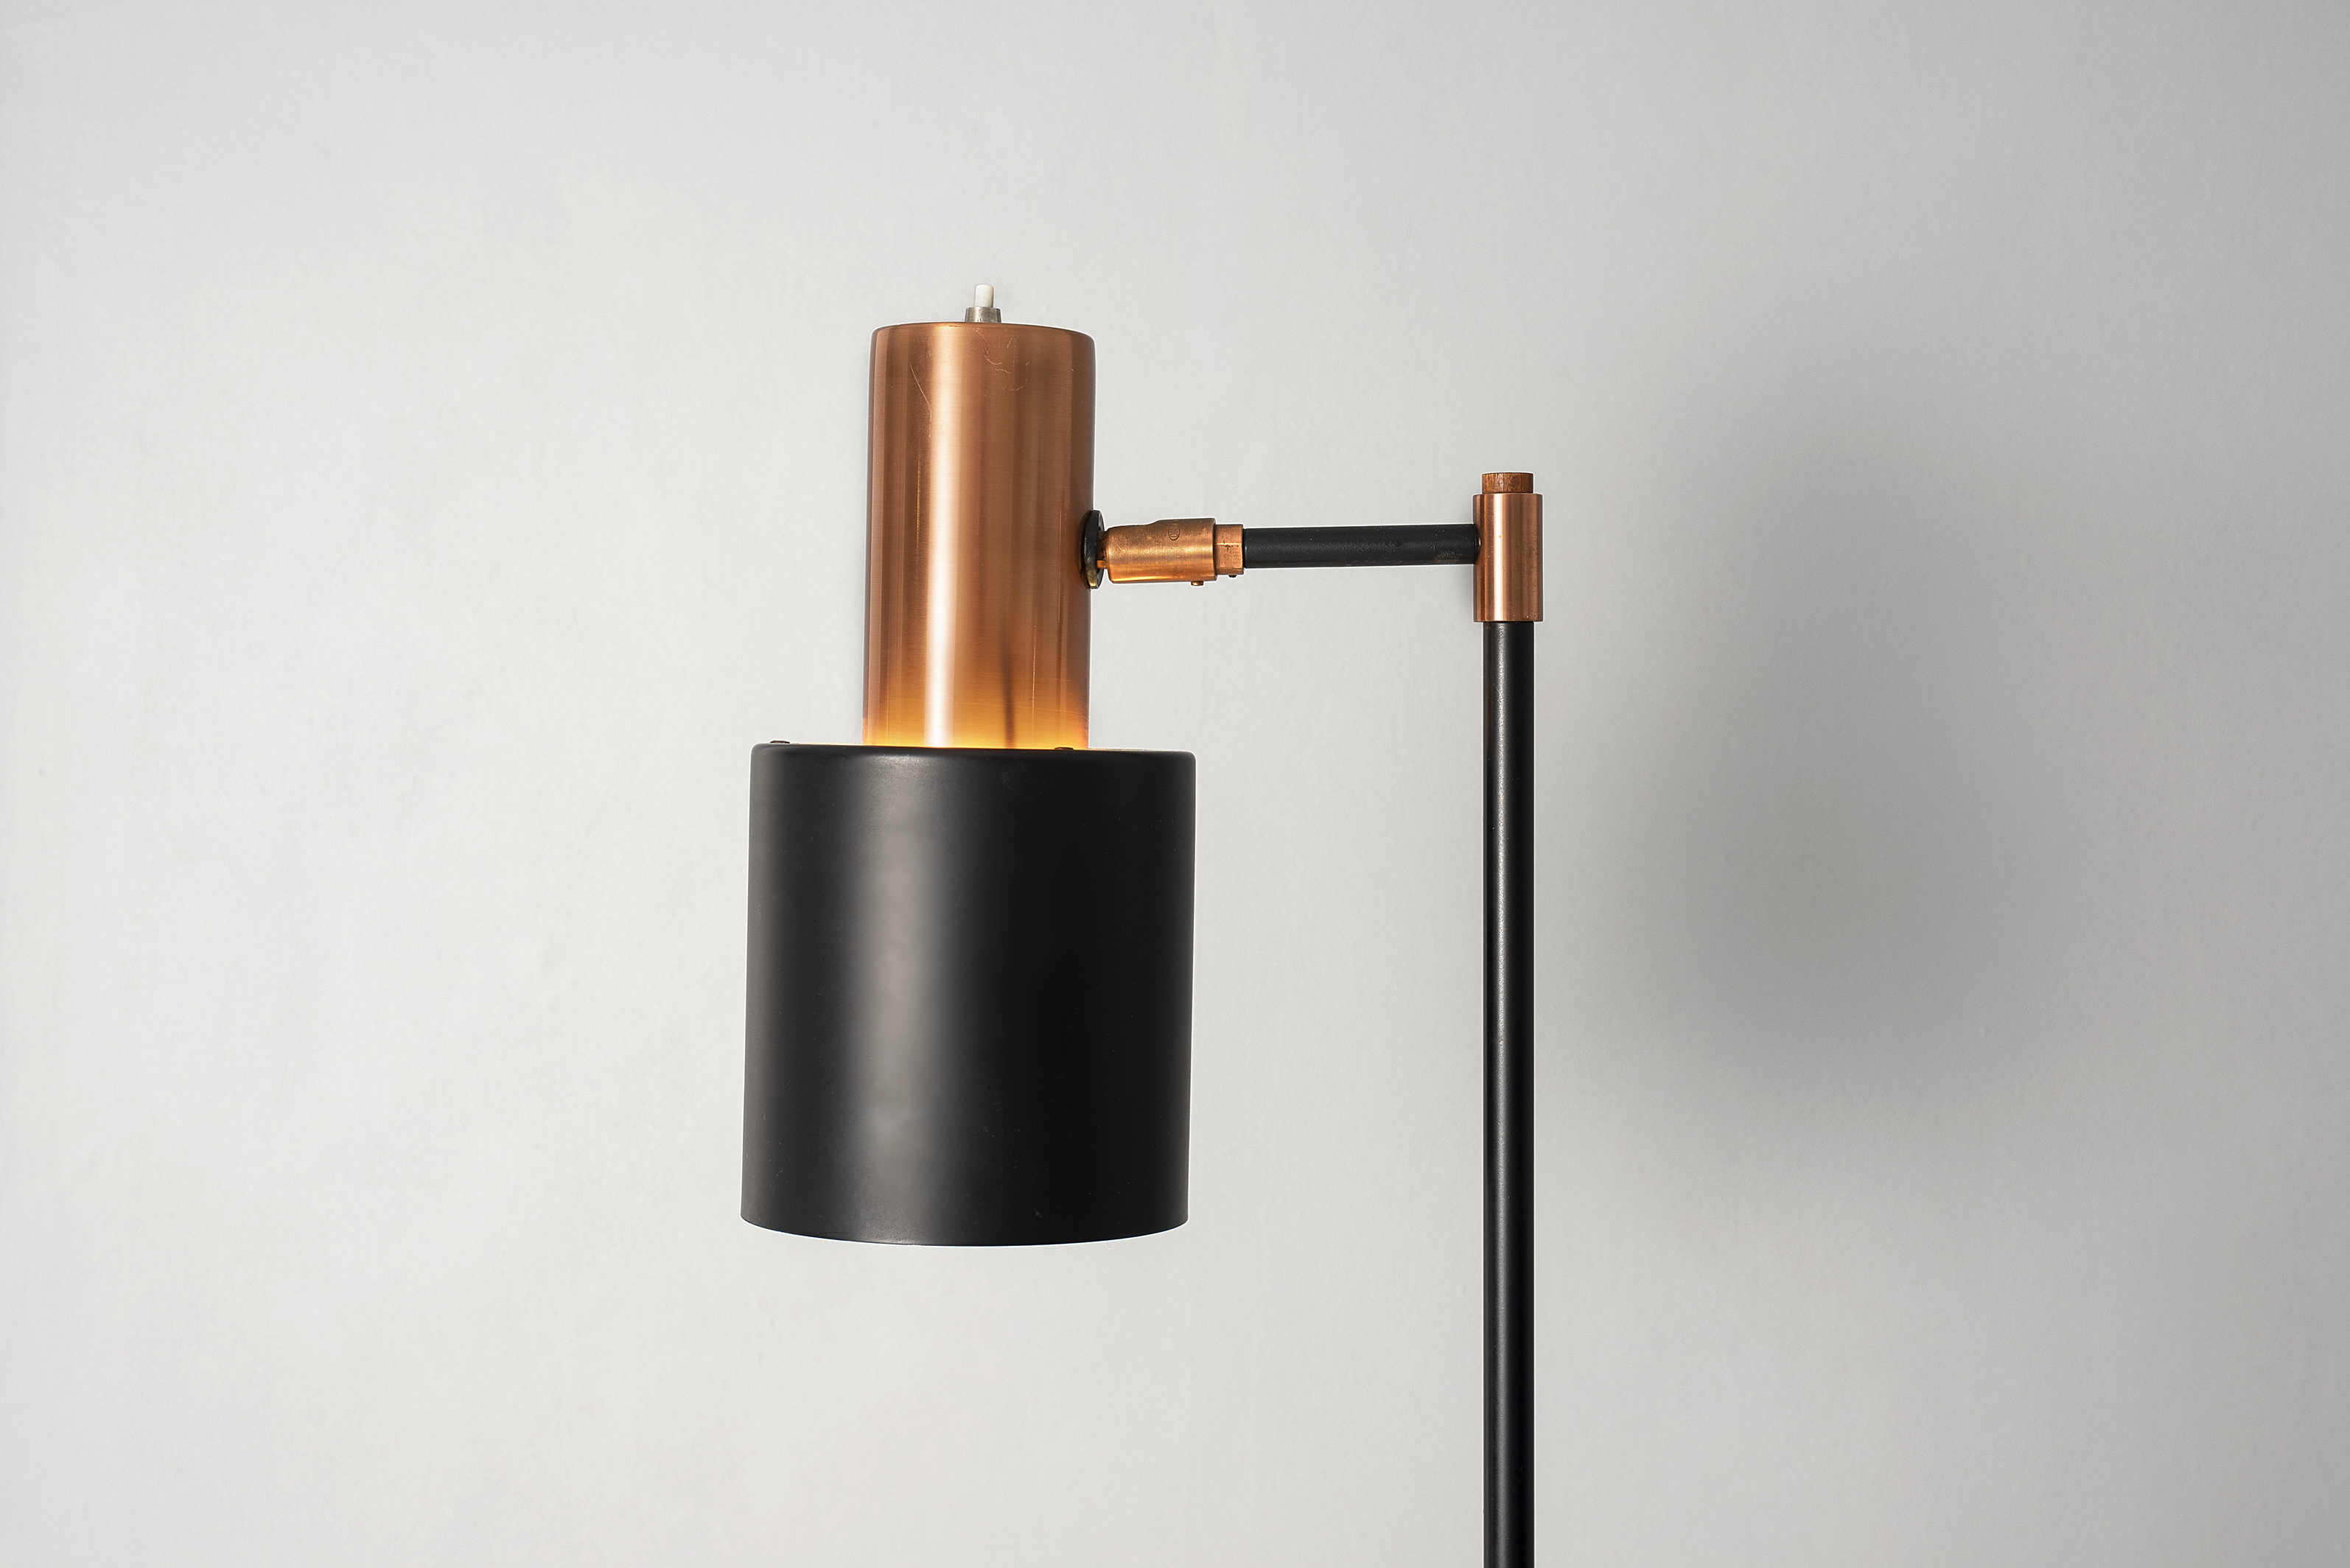 Studio lamp by Jo Hammerborg